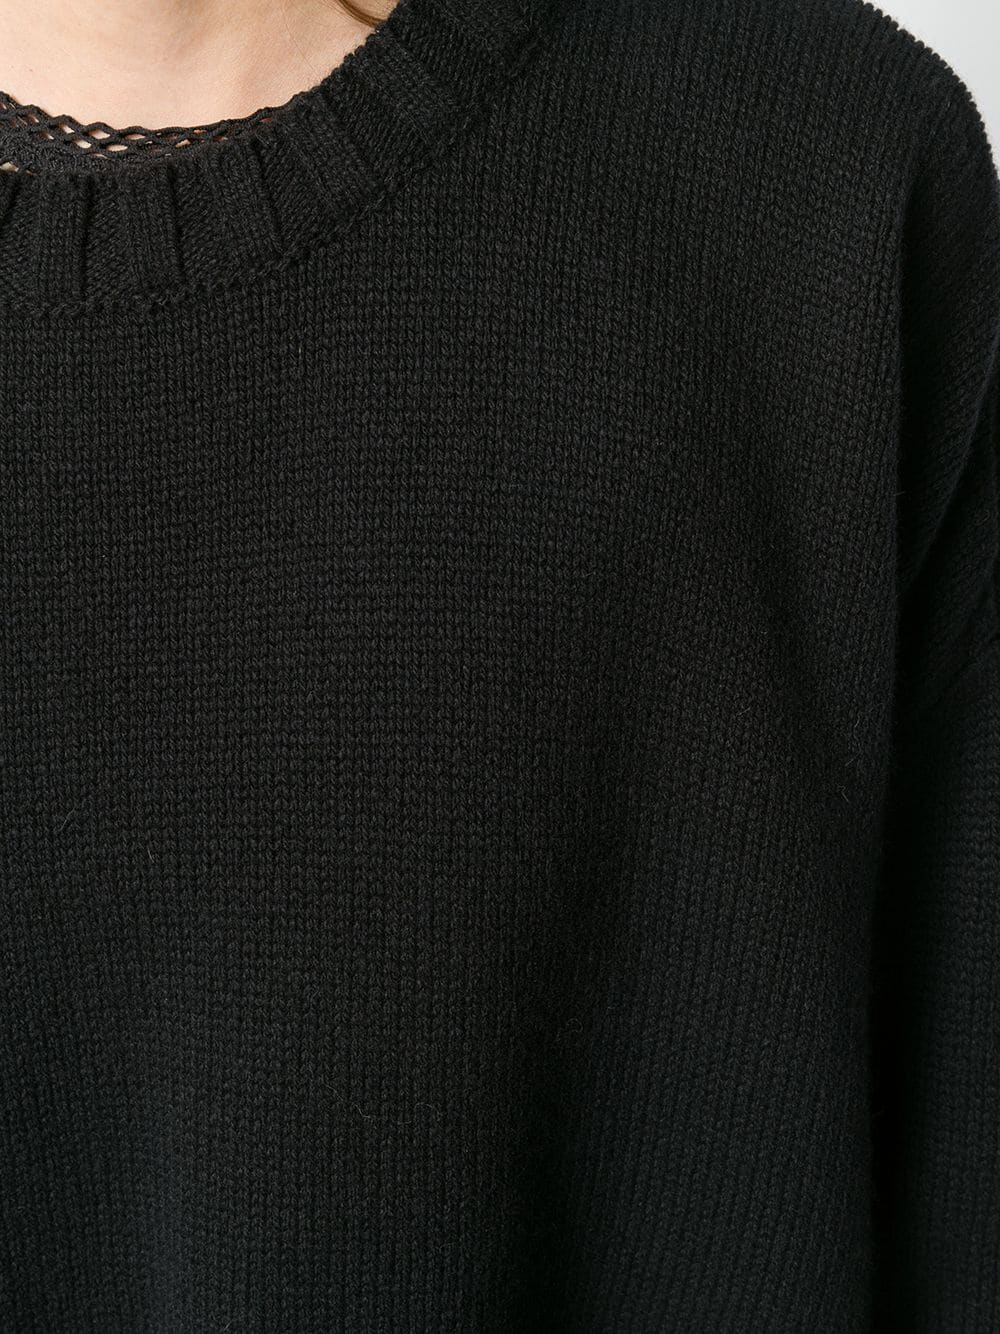 Black cashmere and wool blend jumper  P.A.R.O.S.H. |  | D510210-LINKED013